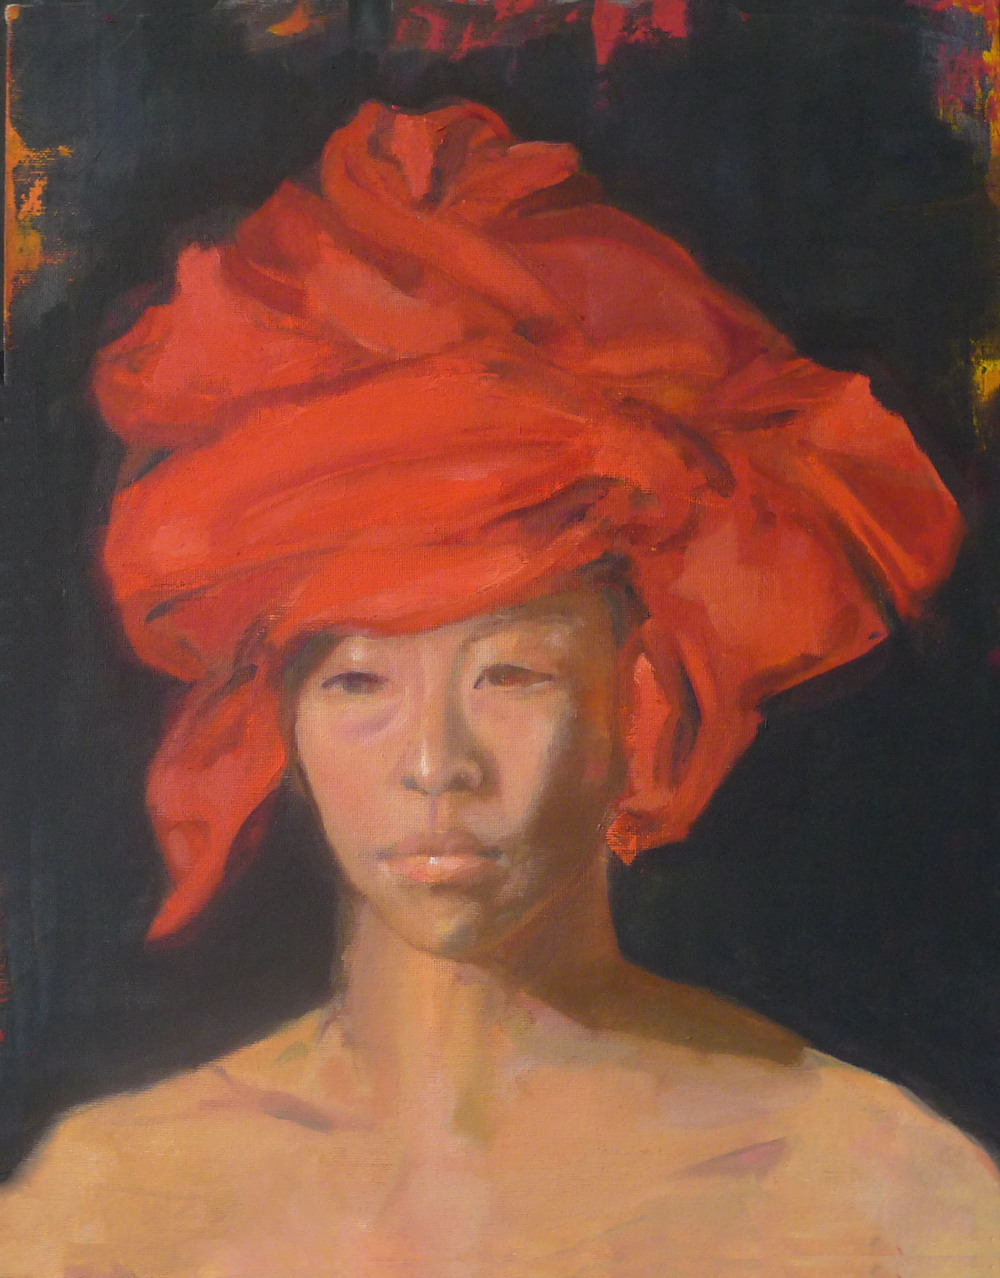 study,2014  Oil on Canvas  16x12inches